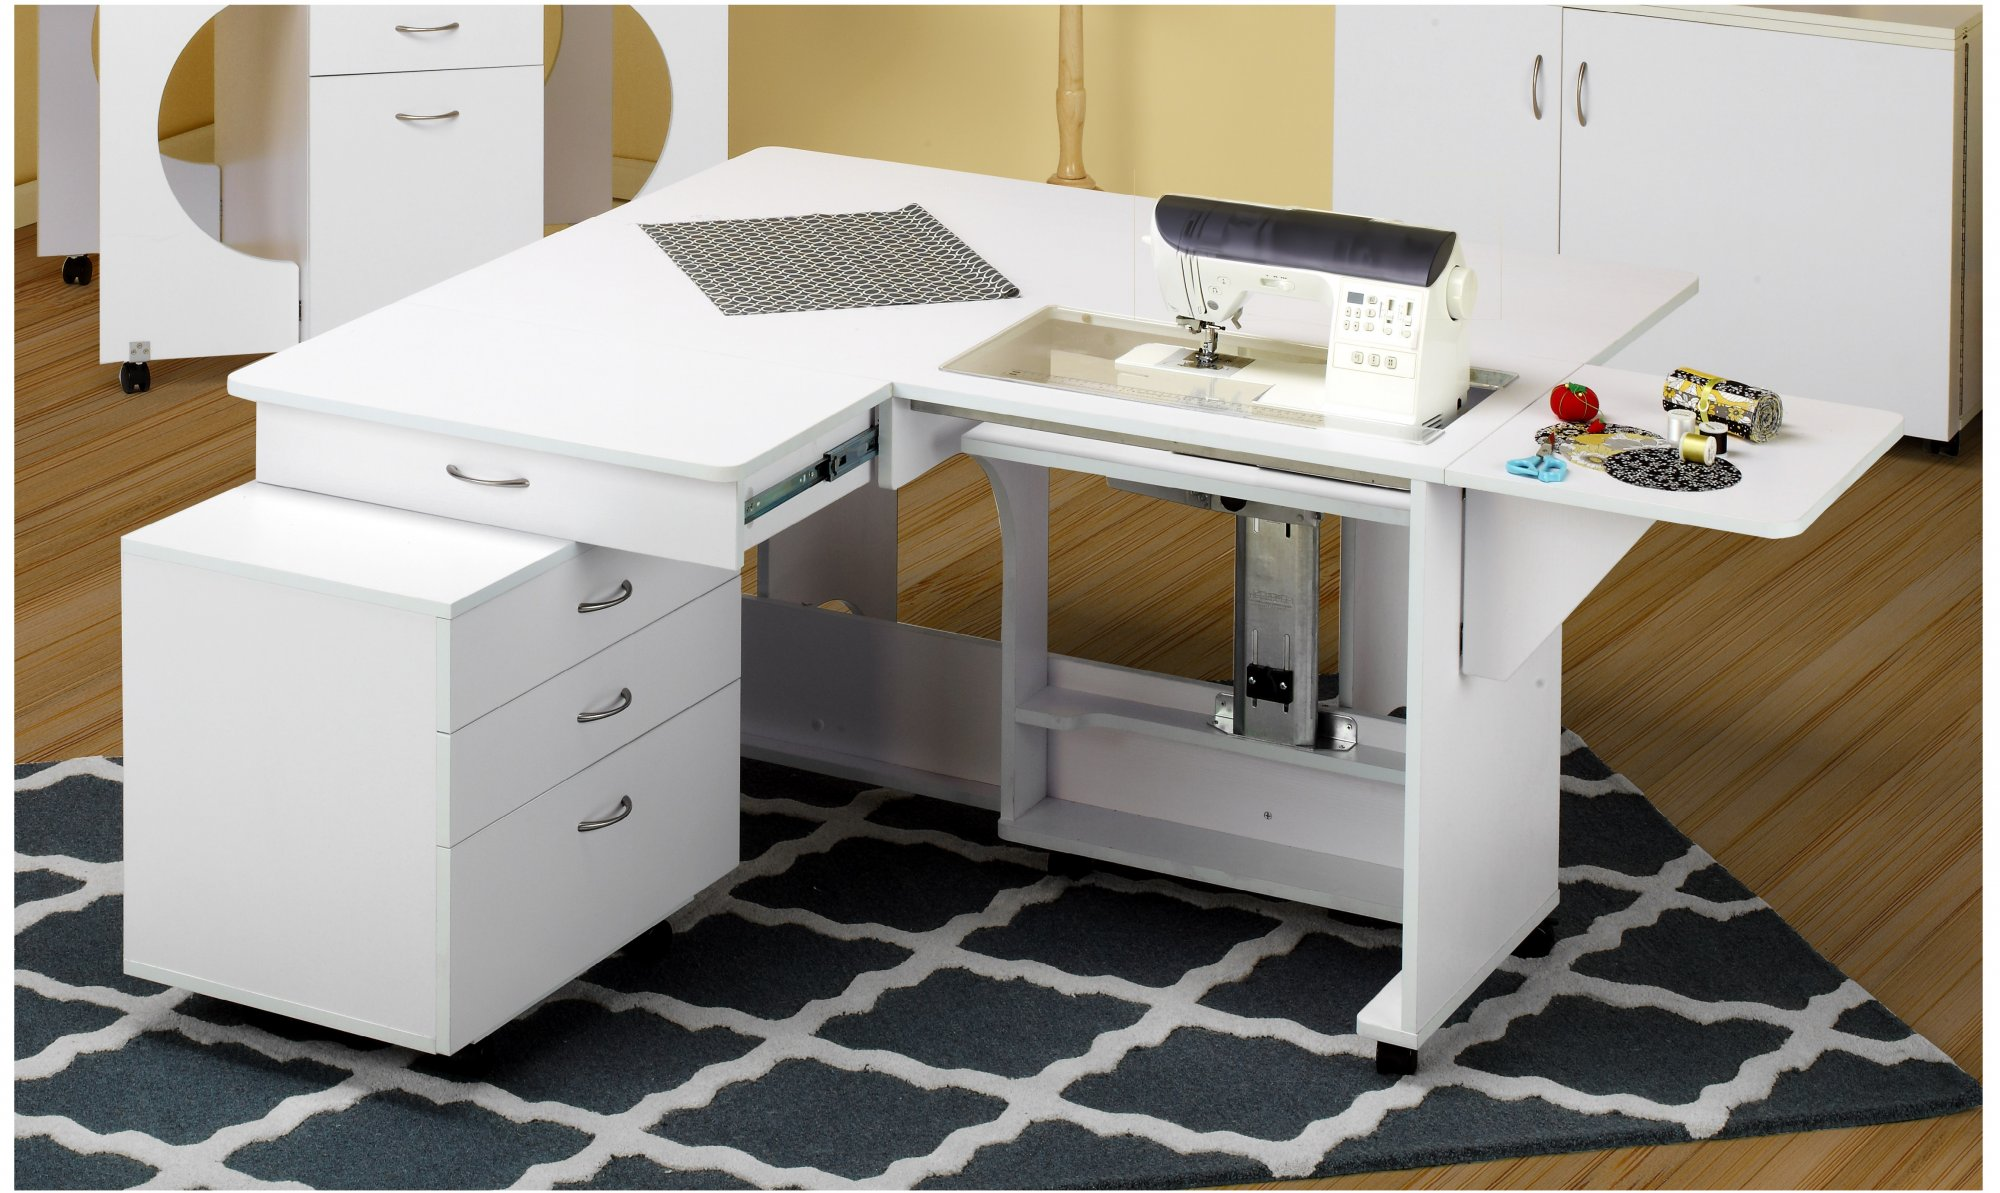 TAILORMADE QUILTERS VISION  Sewing Machine Cabinet & Cutting Table Q-W001 / White